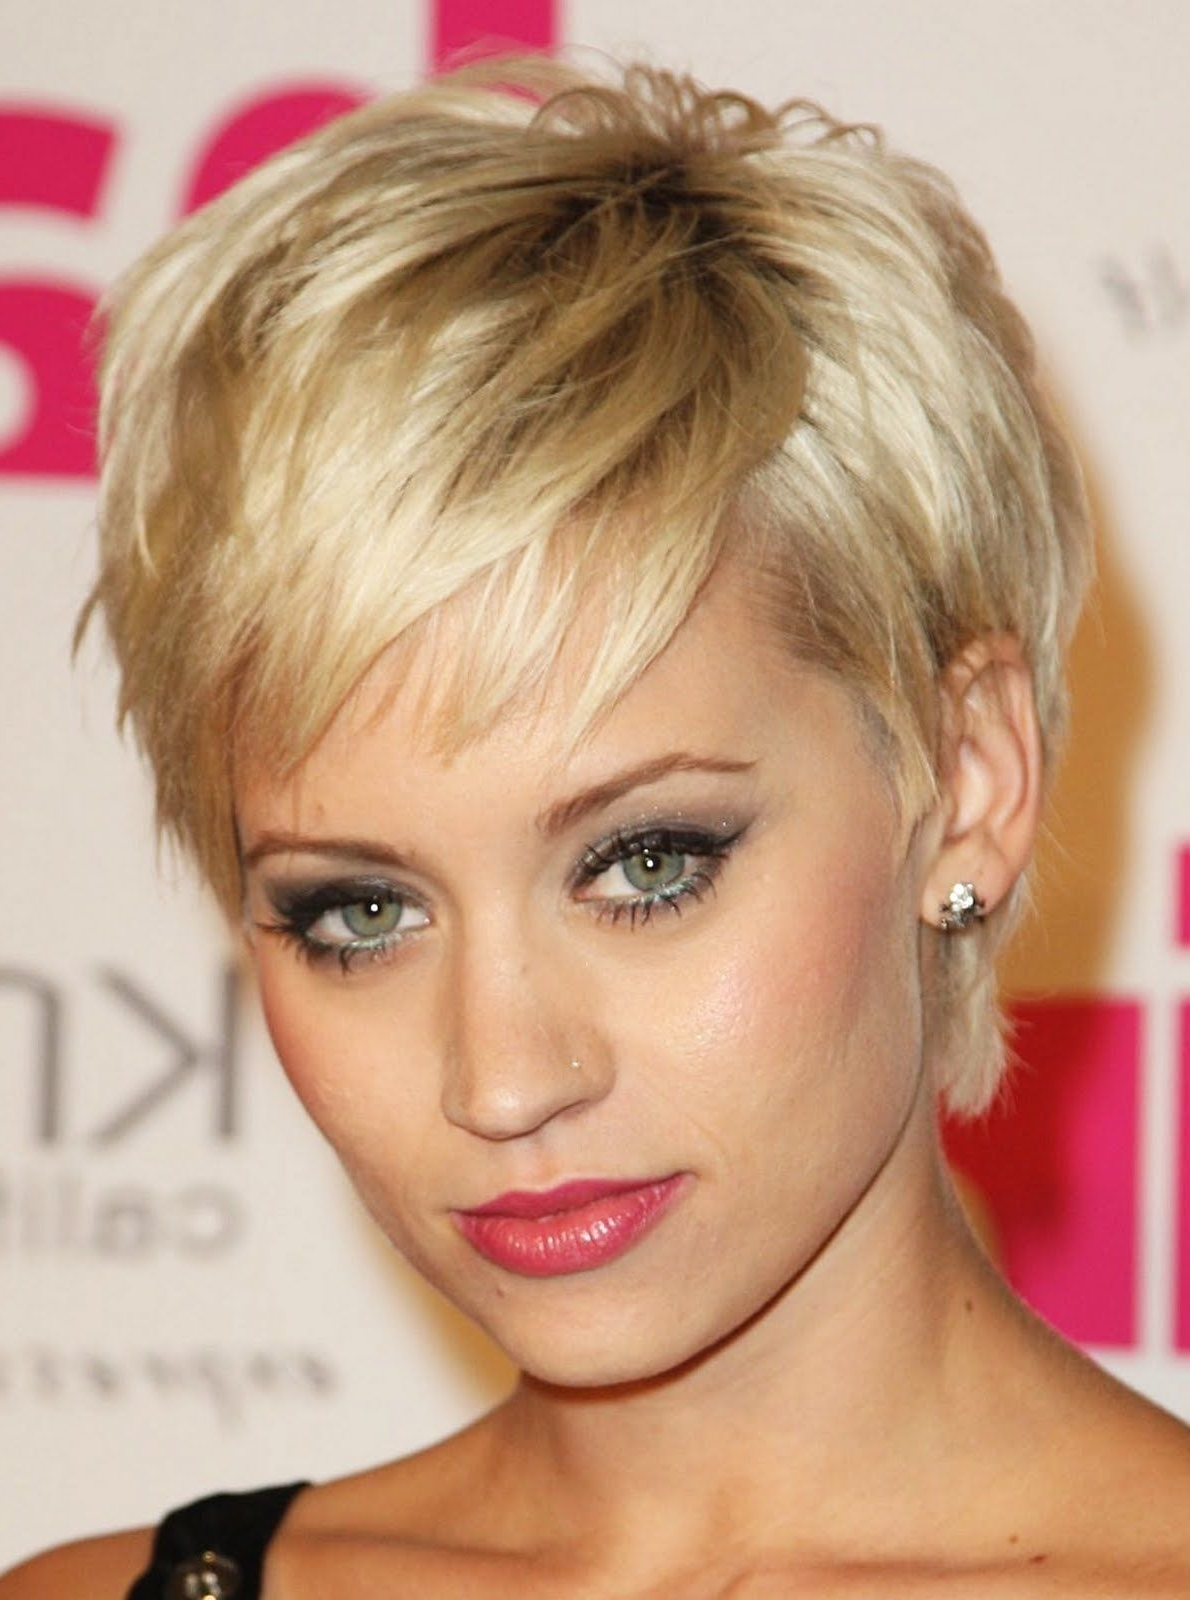 Short Hairstyles For Oval Faces | Fine Hair Hairstyles, Mid Length Pertaining To Current Pixie Hairstyles For Thin Hair (View 11 of 15)